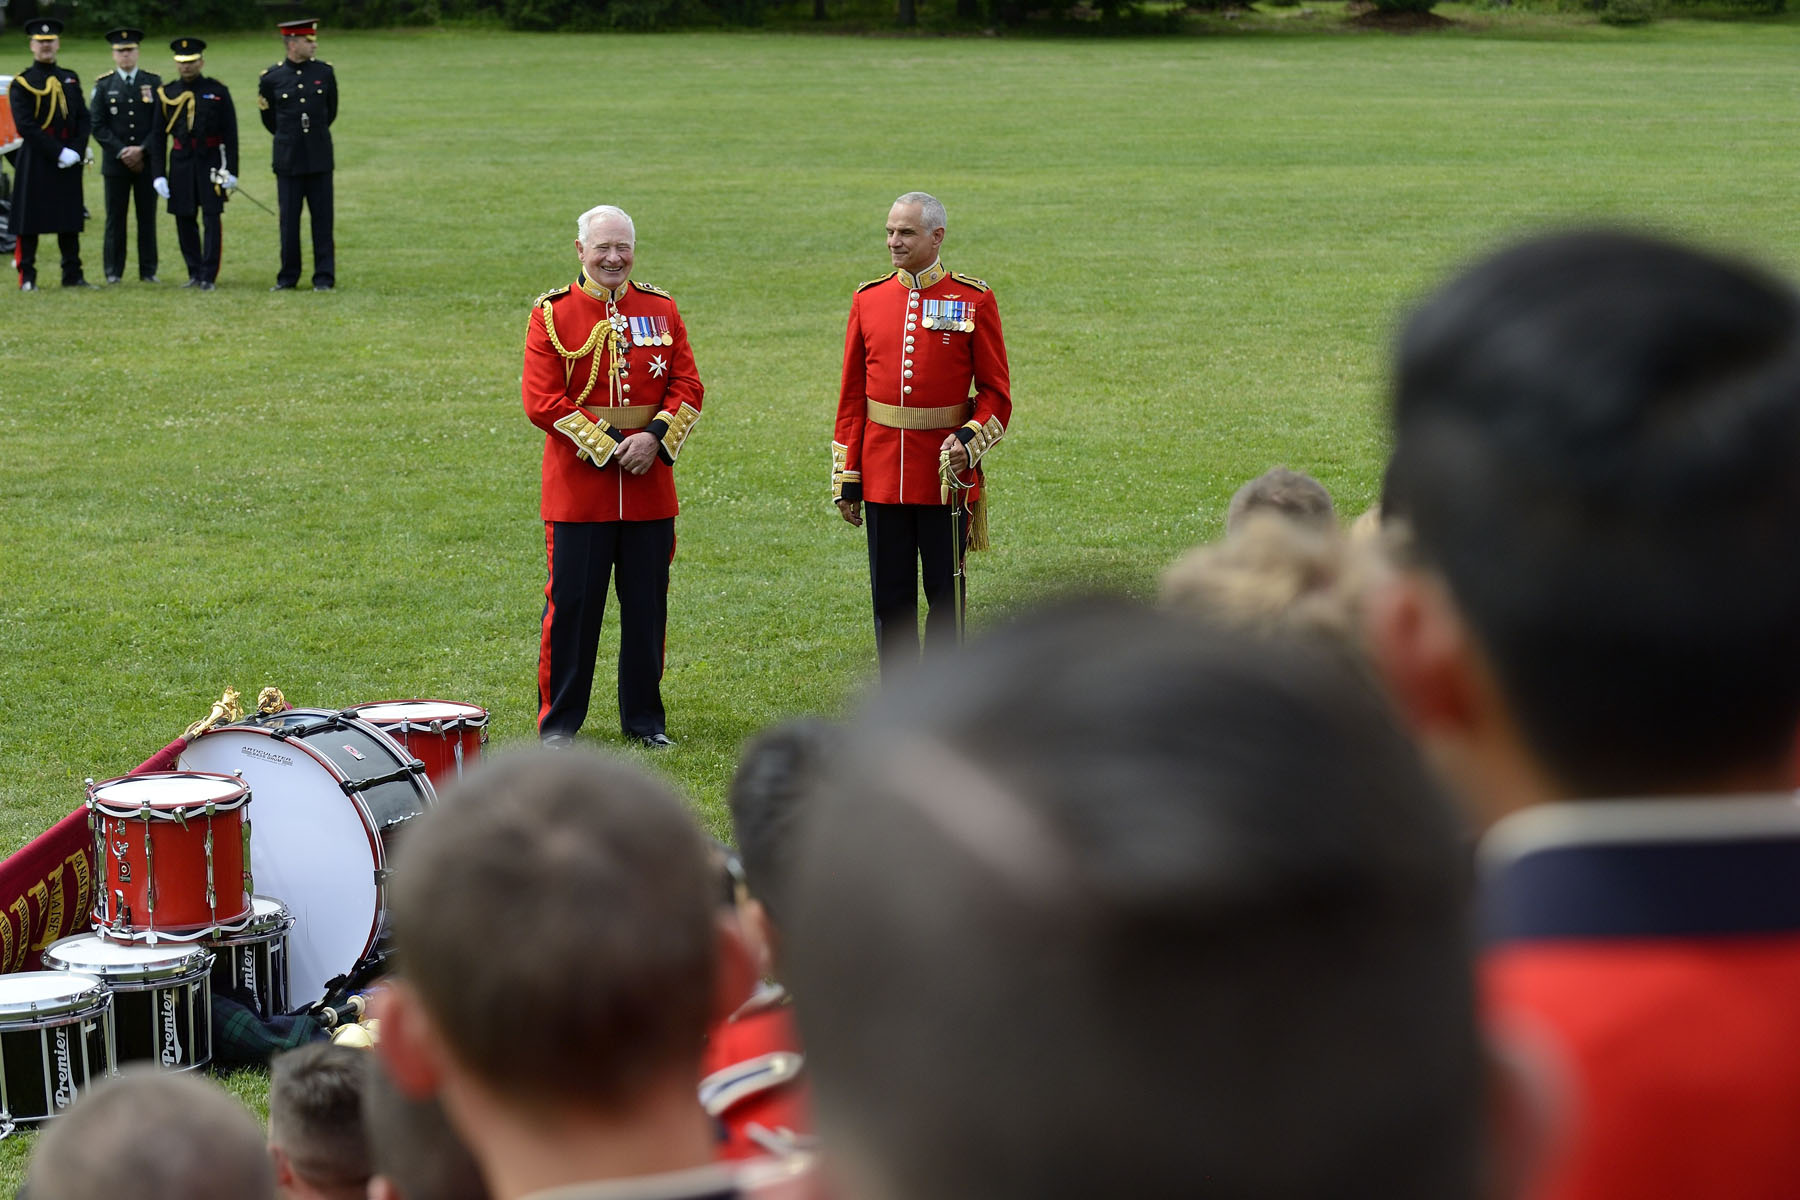 As a gift, His Excellency was given a snare drum used by the Ceremonial Guard.